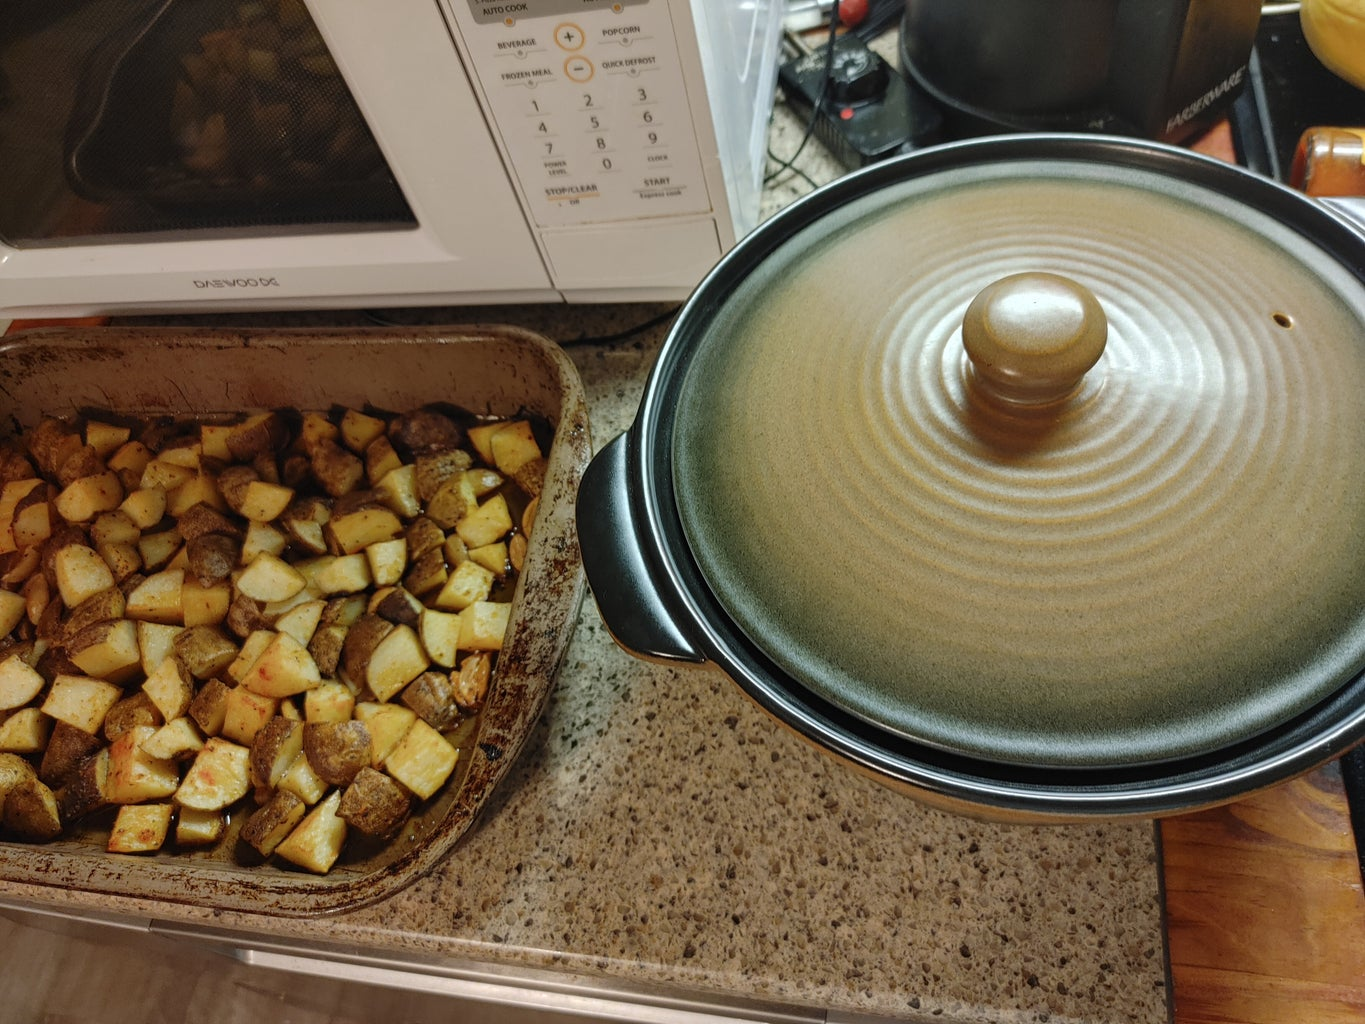 Potatoes and Plate!